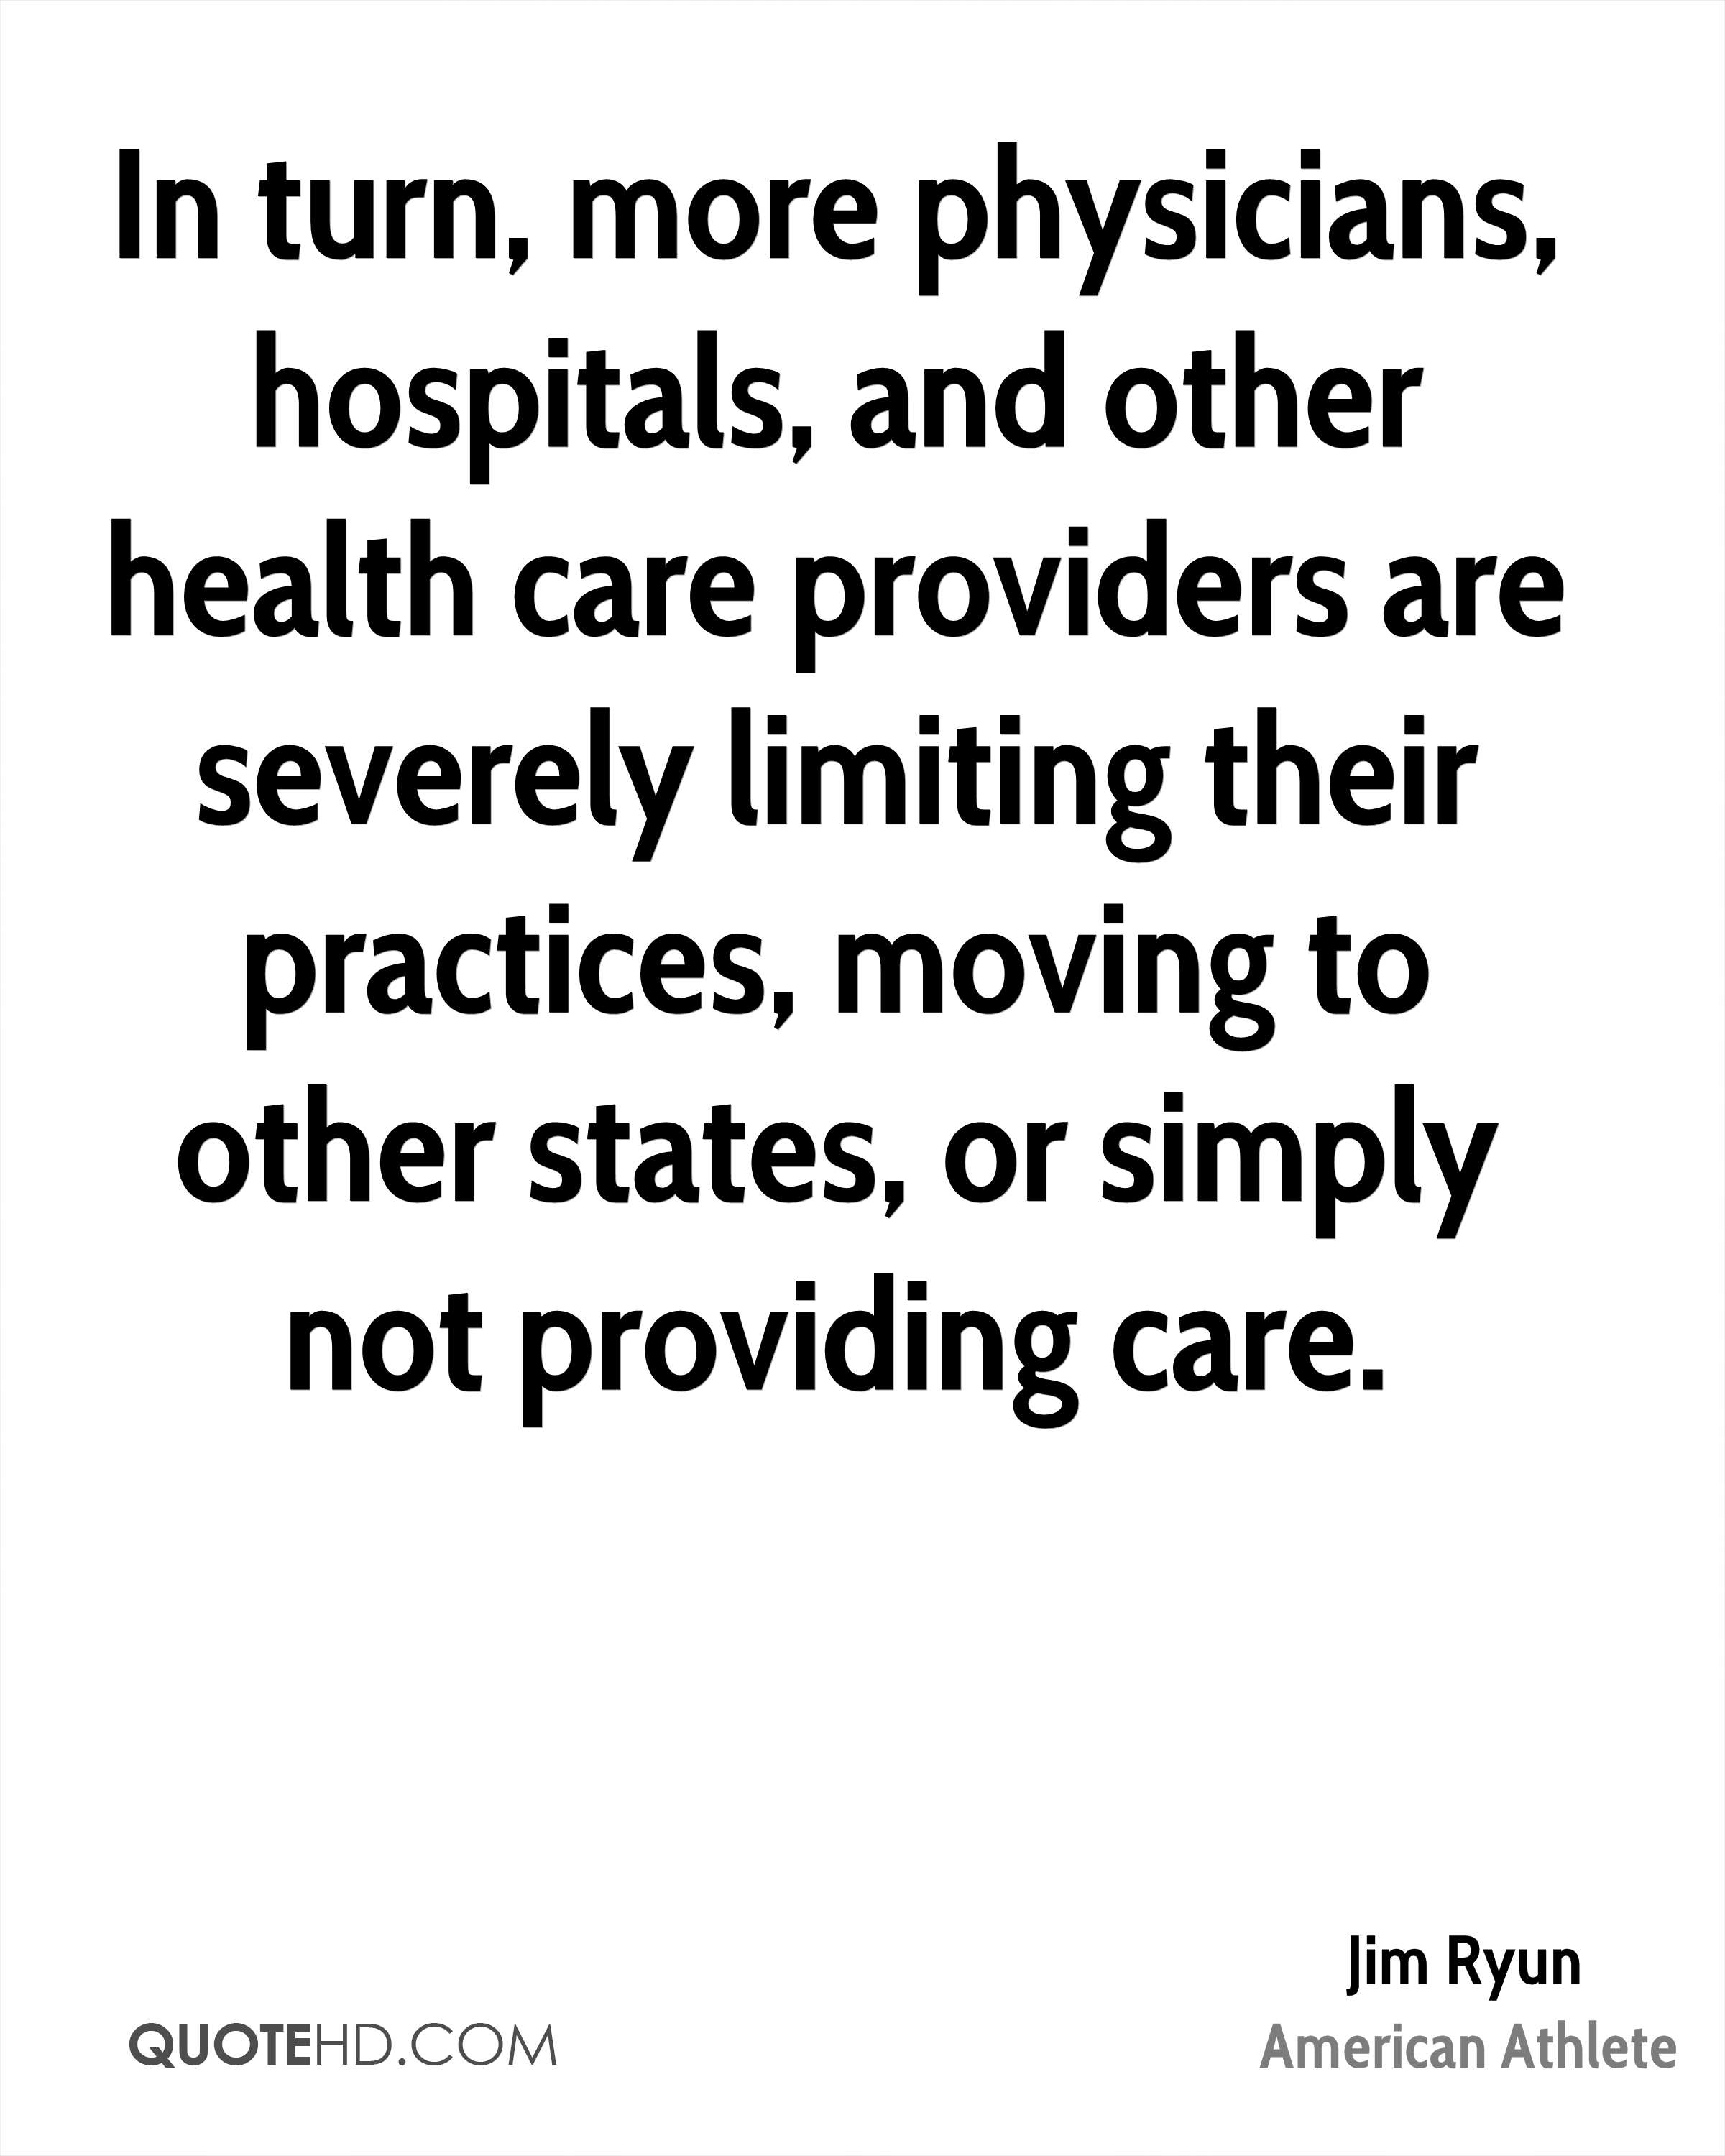 In turn, more physicians, hospitals, and other health care providers are severely limiting their practices, moving to other states, or simply not providing care.